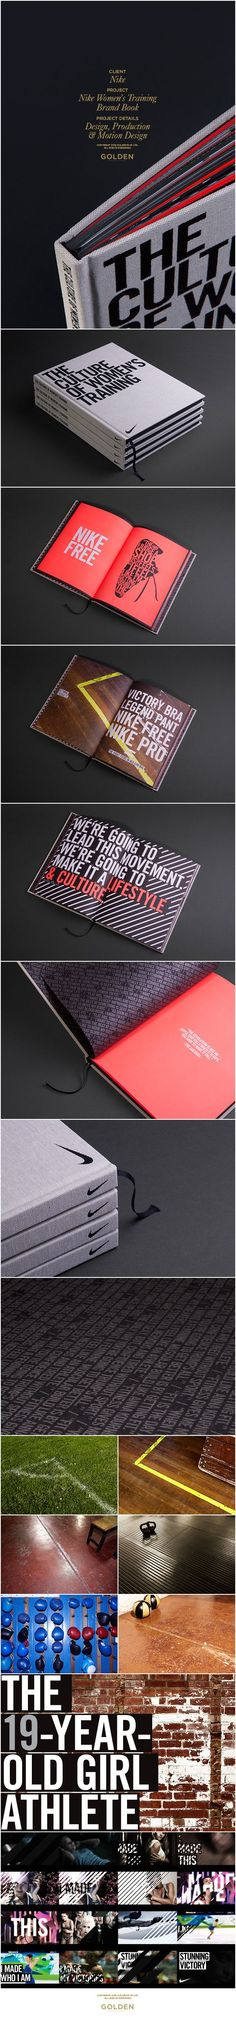 Nike Womens Training Brand Book by Golden , via Behance